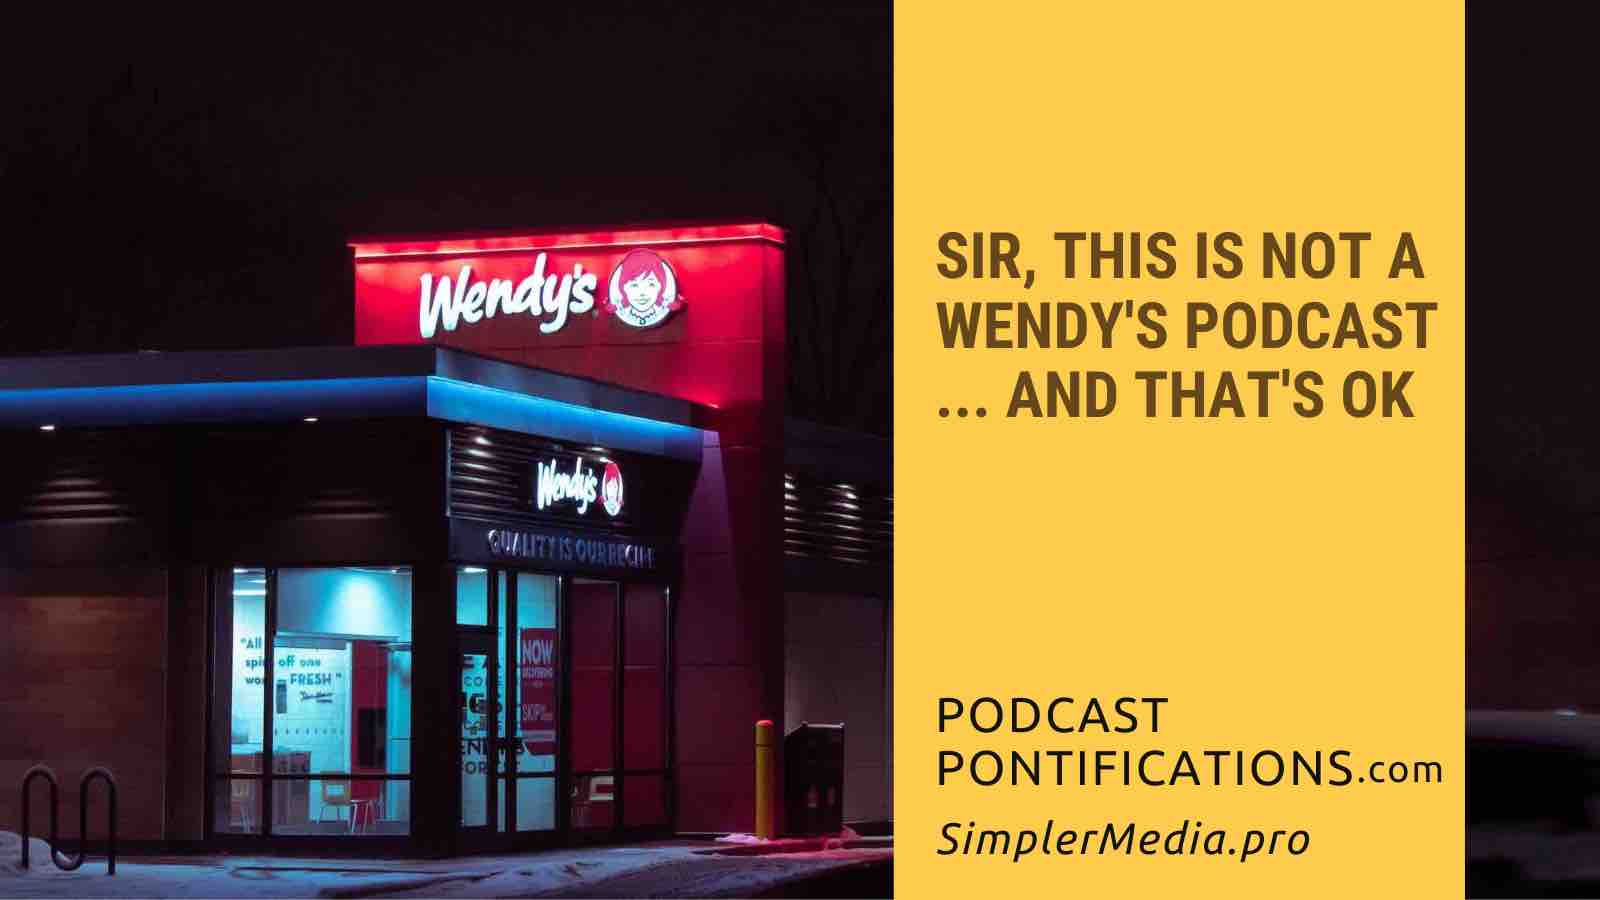 Sir, This Is Not A Wendy's Podcast... And That's OK